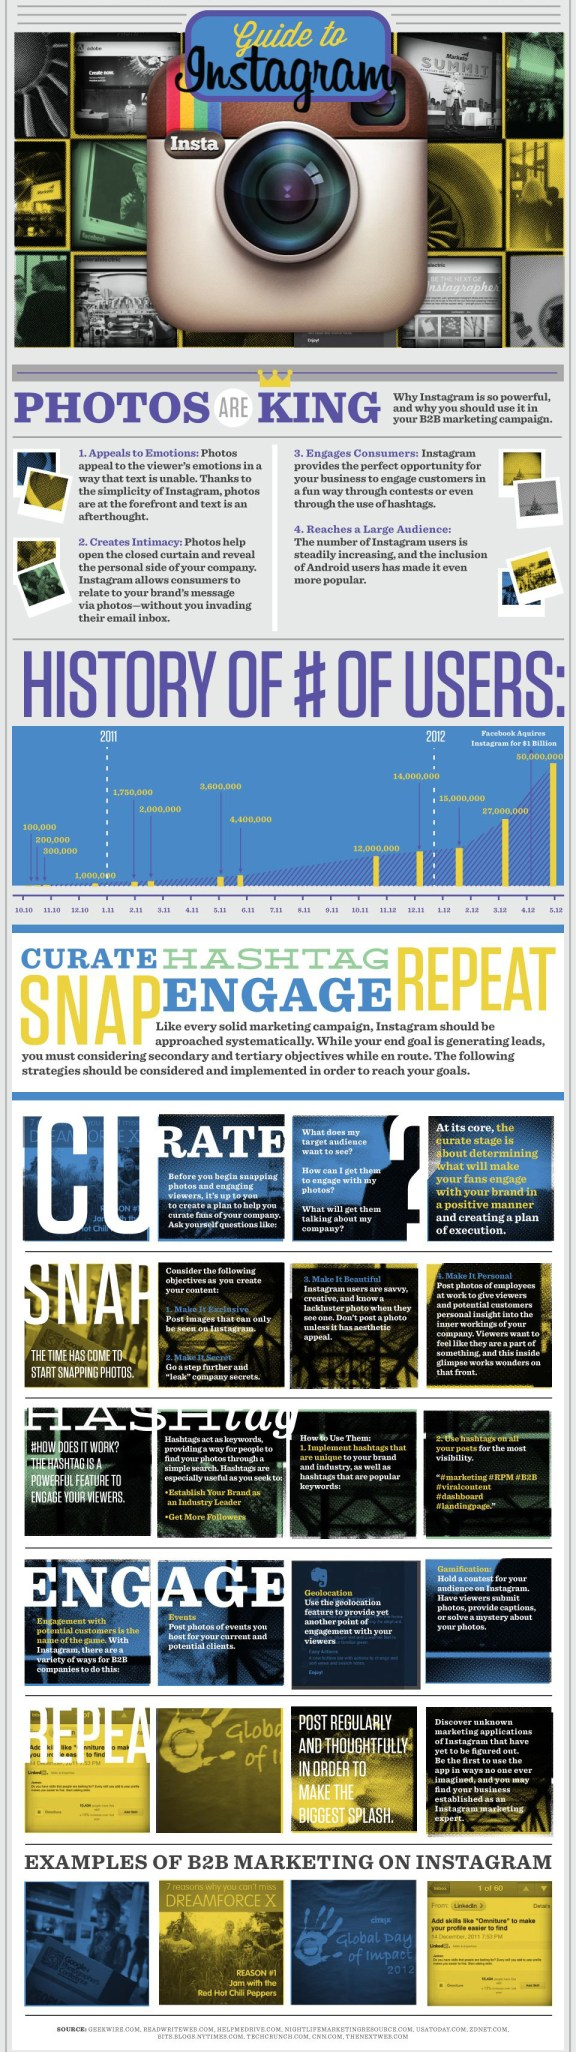 the-marketing-guide-to-instagram-infographic